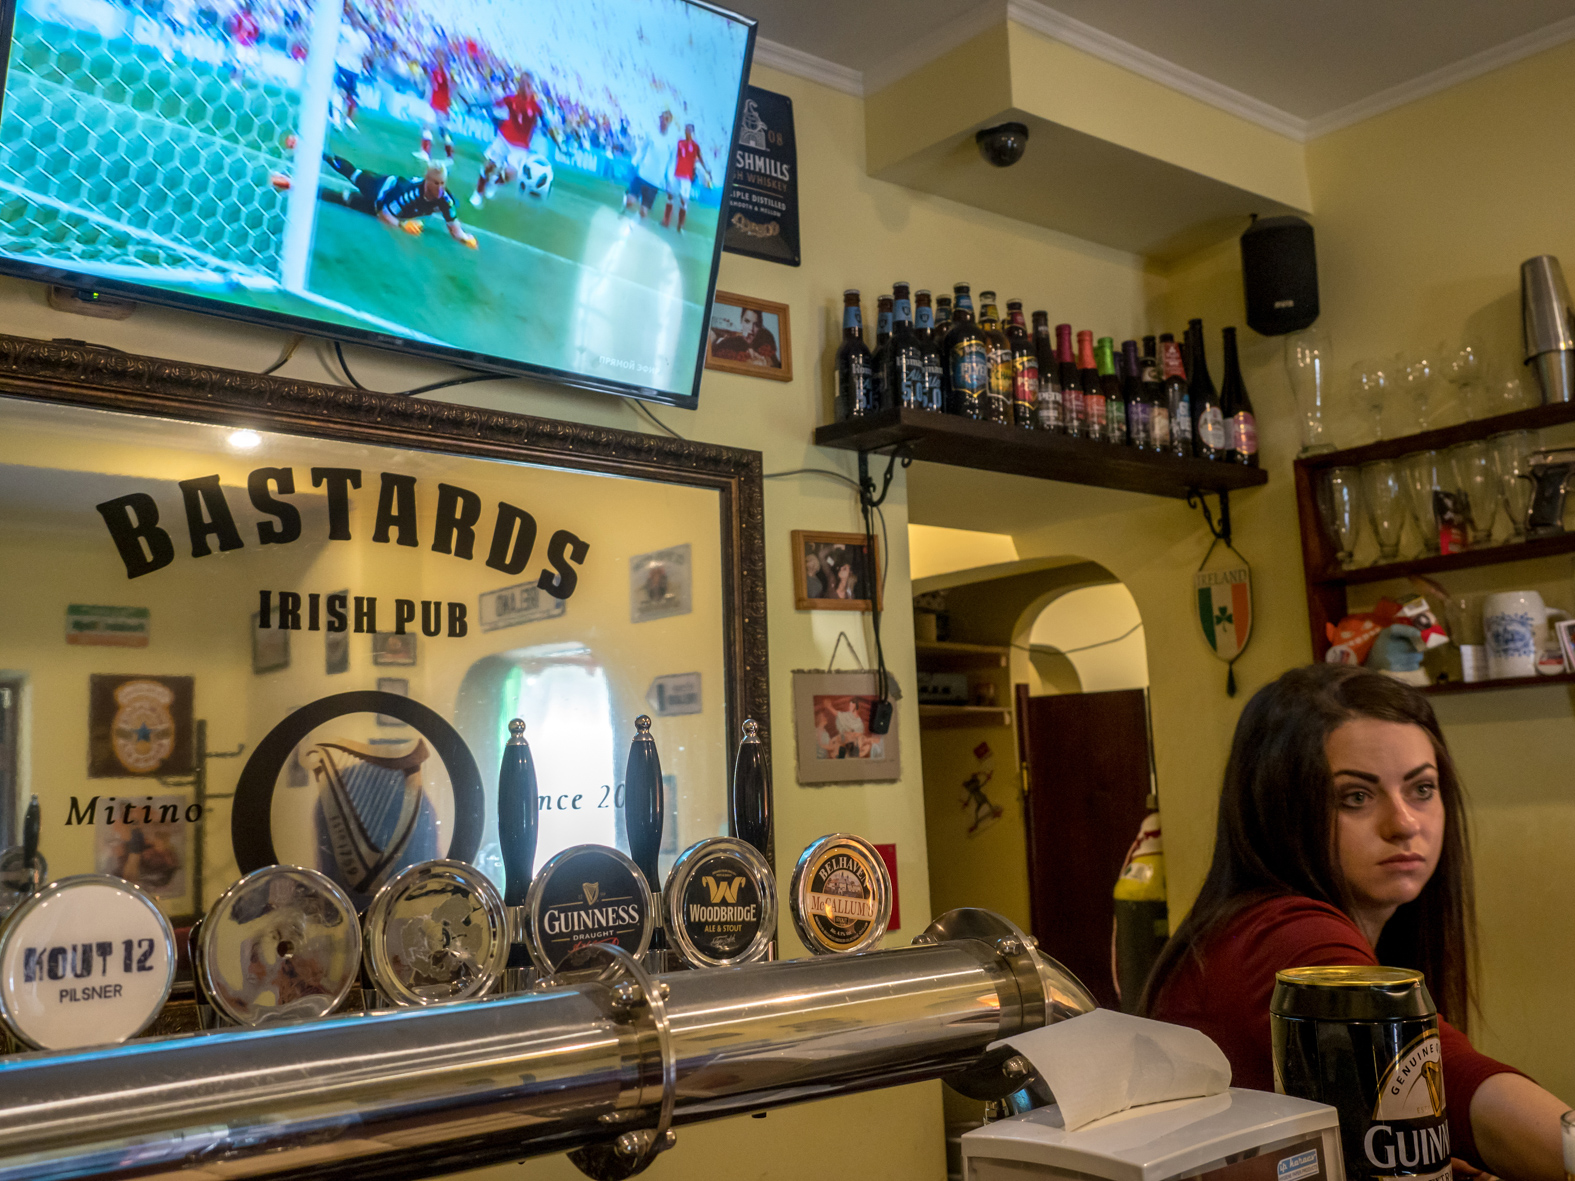 The BASTARDS IRISH PUB in the north west Moscow suburb of Mithino showing a match on TV. The 21st FIFA World Cup football tournament took place in Russia in 2018. It was the first World Cup to be held in Eastern Europe and the eleventh time that it has been held in Europe. For the first time the tournament took place on two continents – Europe and Asia. All but two of the stadium venues were in European Russia.